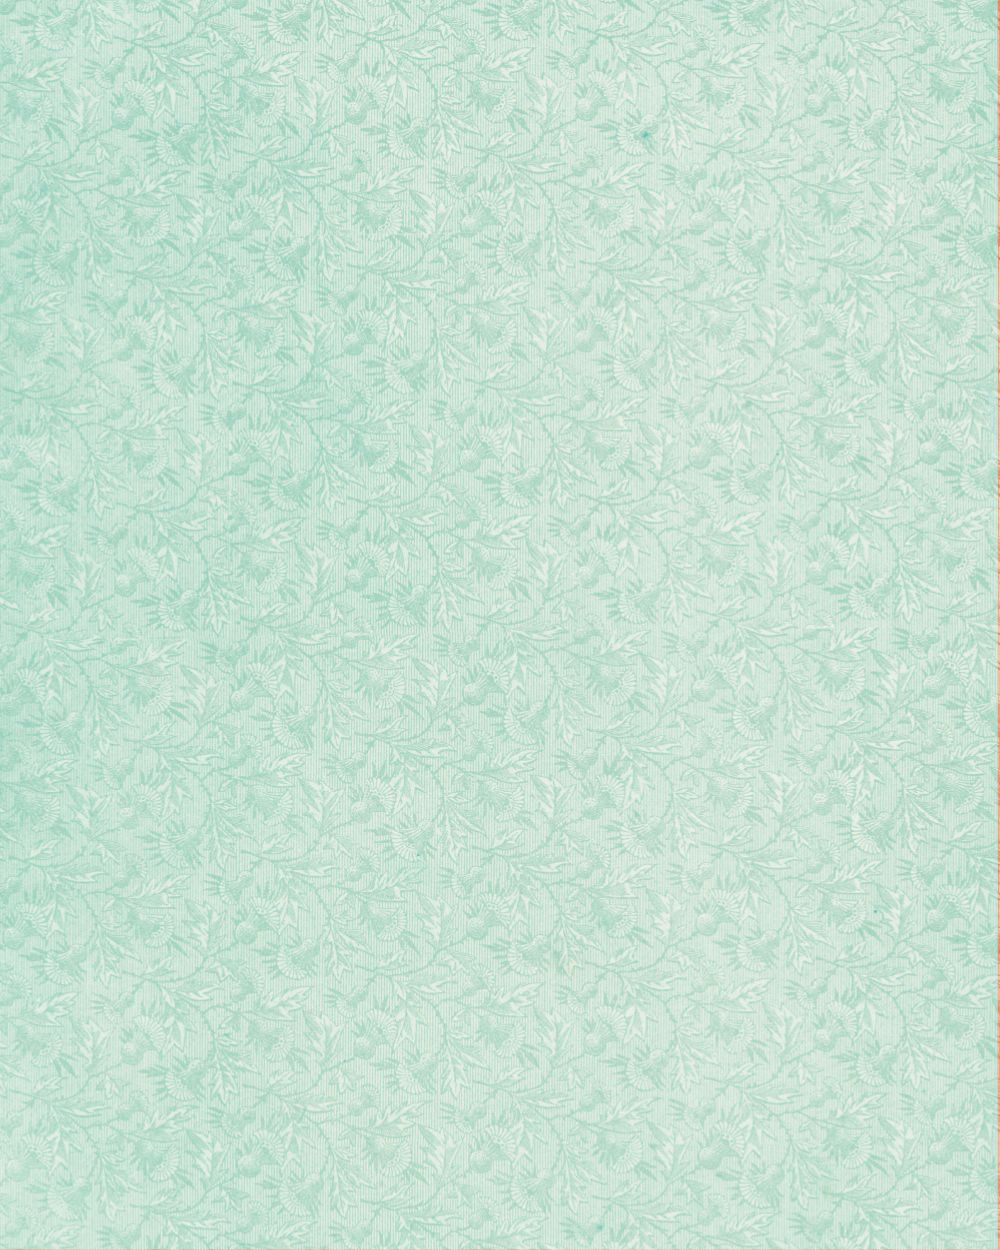 Free Floral Paper Backgrounds | Backgrounds! | Pinterest | Paper - Free Printable Card Stock Paper